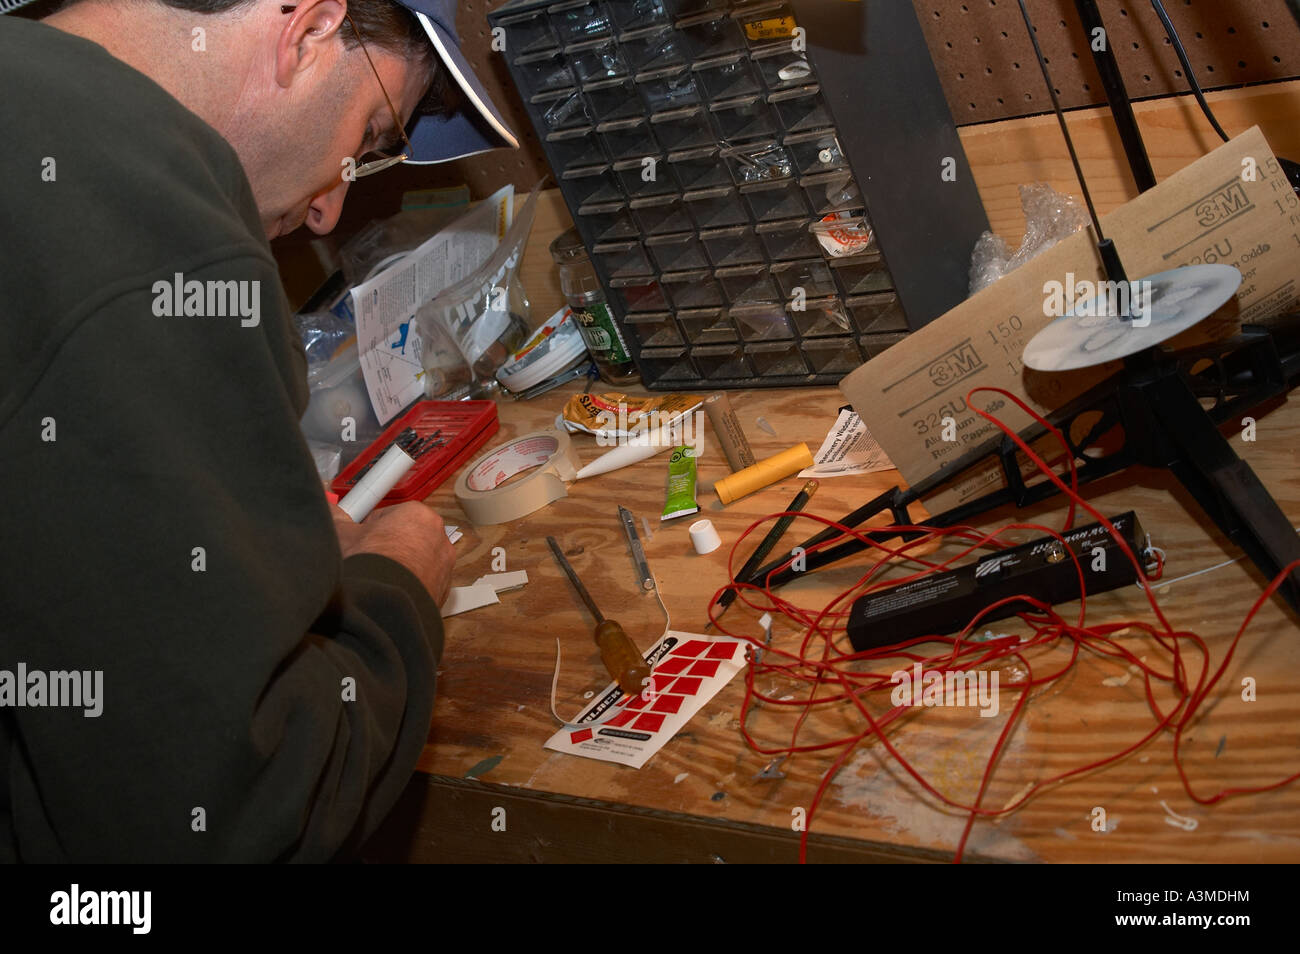 Basement Workshop Stock Photos Images Alamy Wiringhomevisioedit71111jpg Father Man Male Assembles Toy Rocket Image